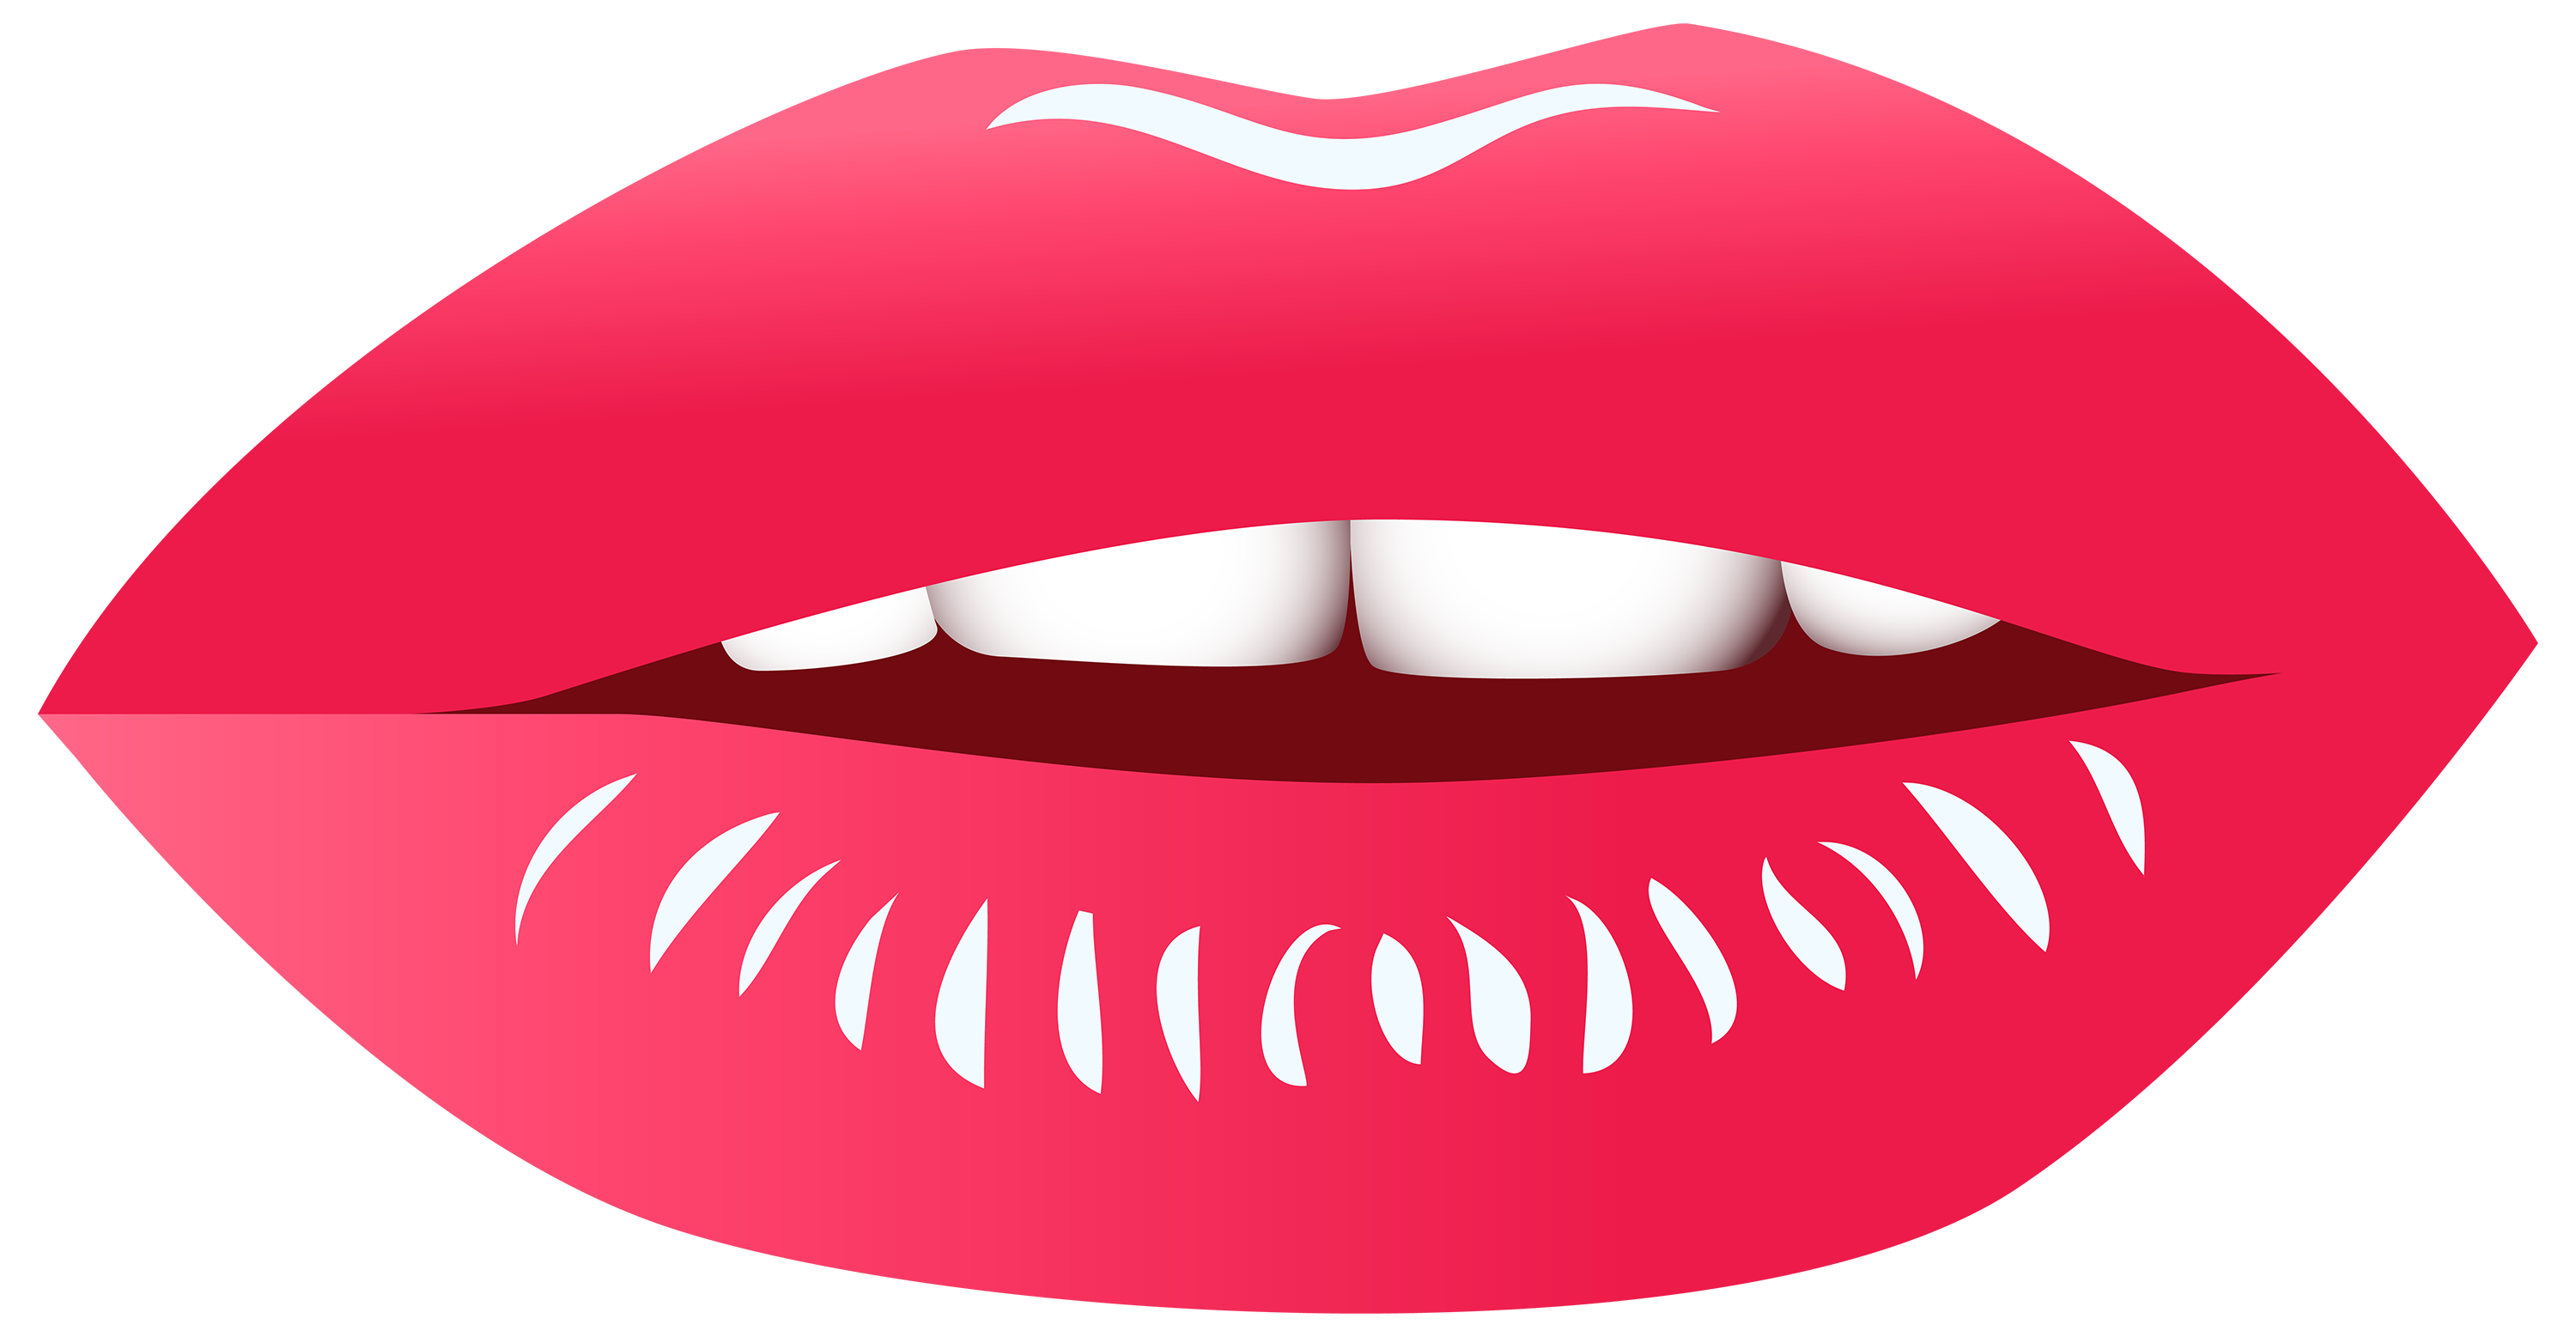 Mouth clipart clean mouth. Png best web